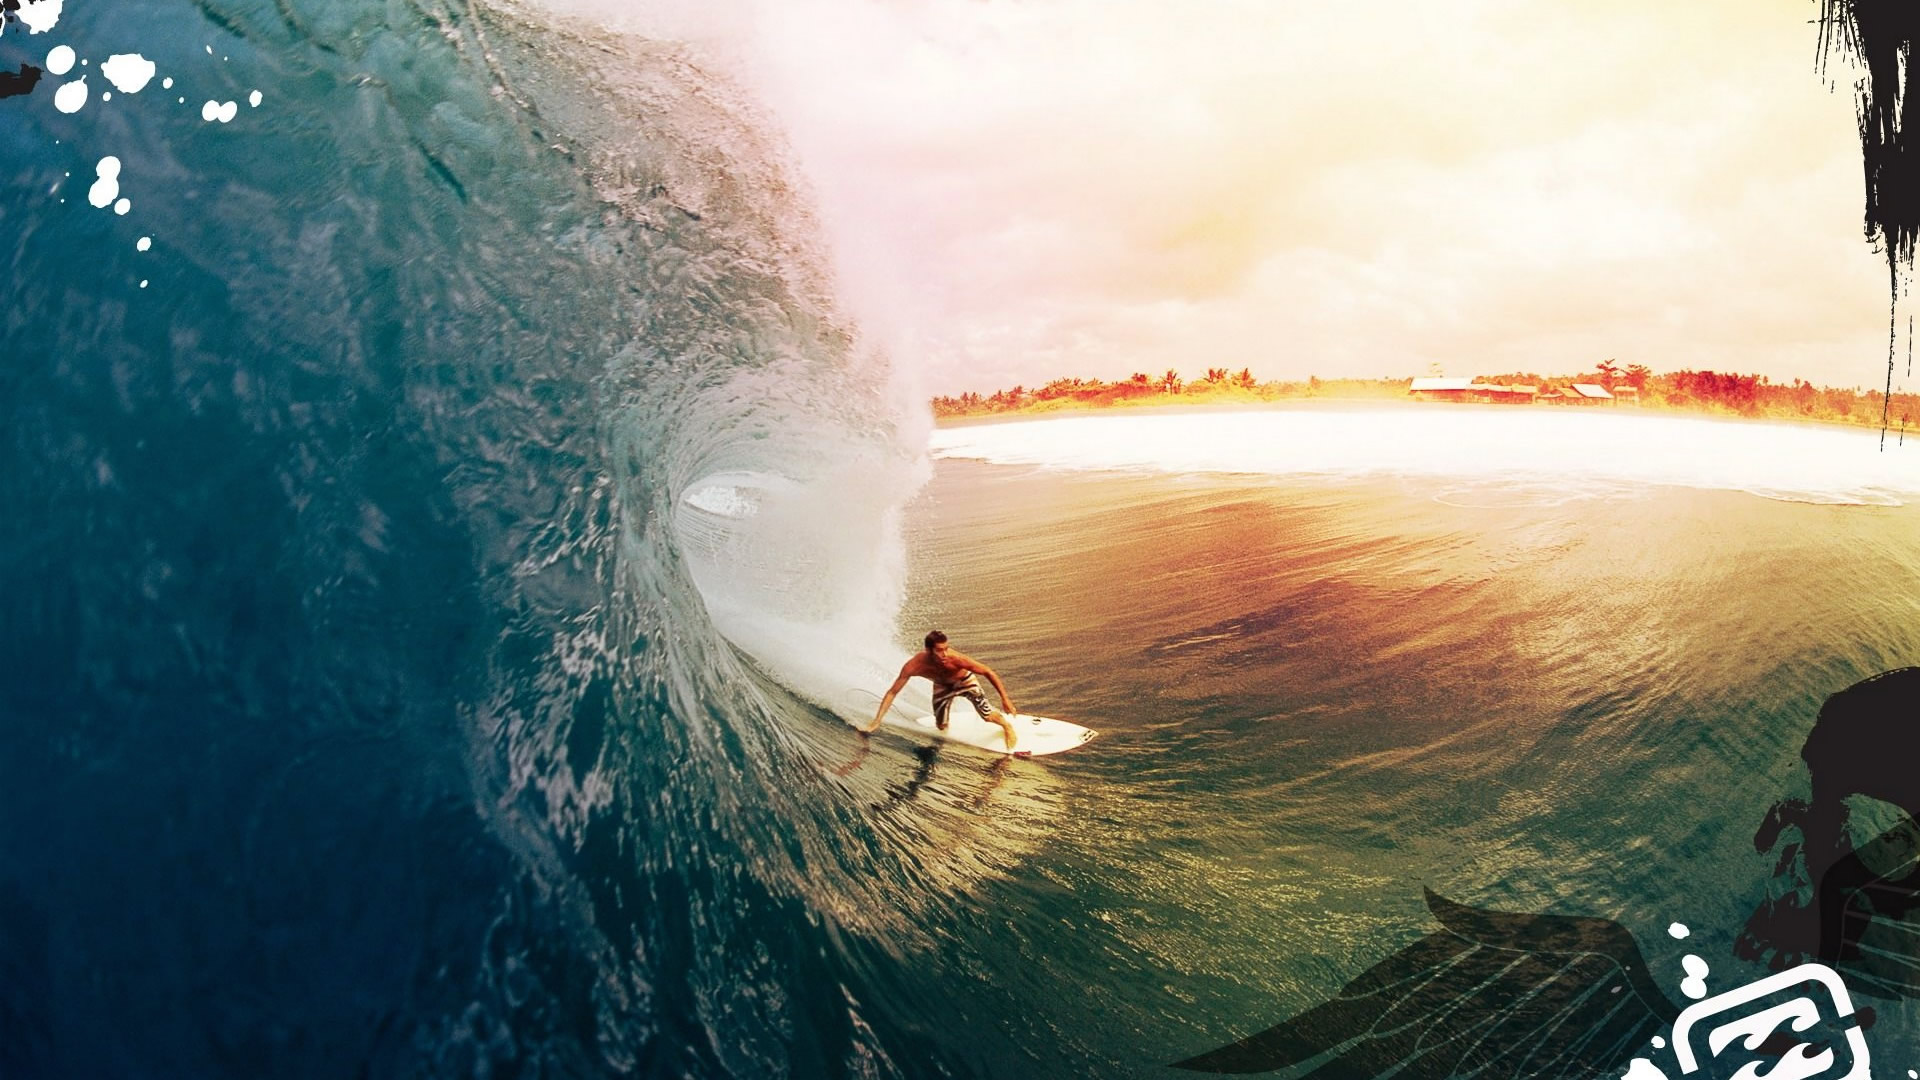 ... wave-surfing-wallpaper great_wave_surfing_wallpaper_bc4e8 ...